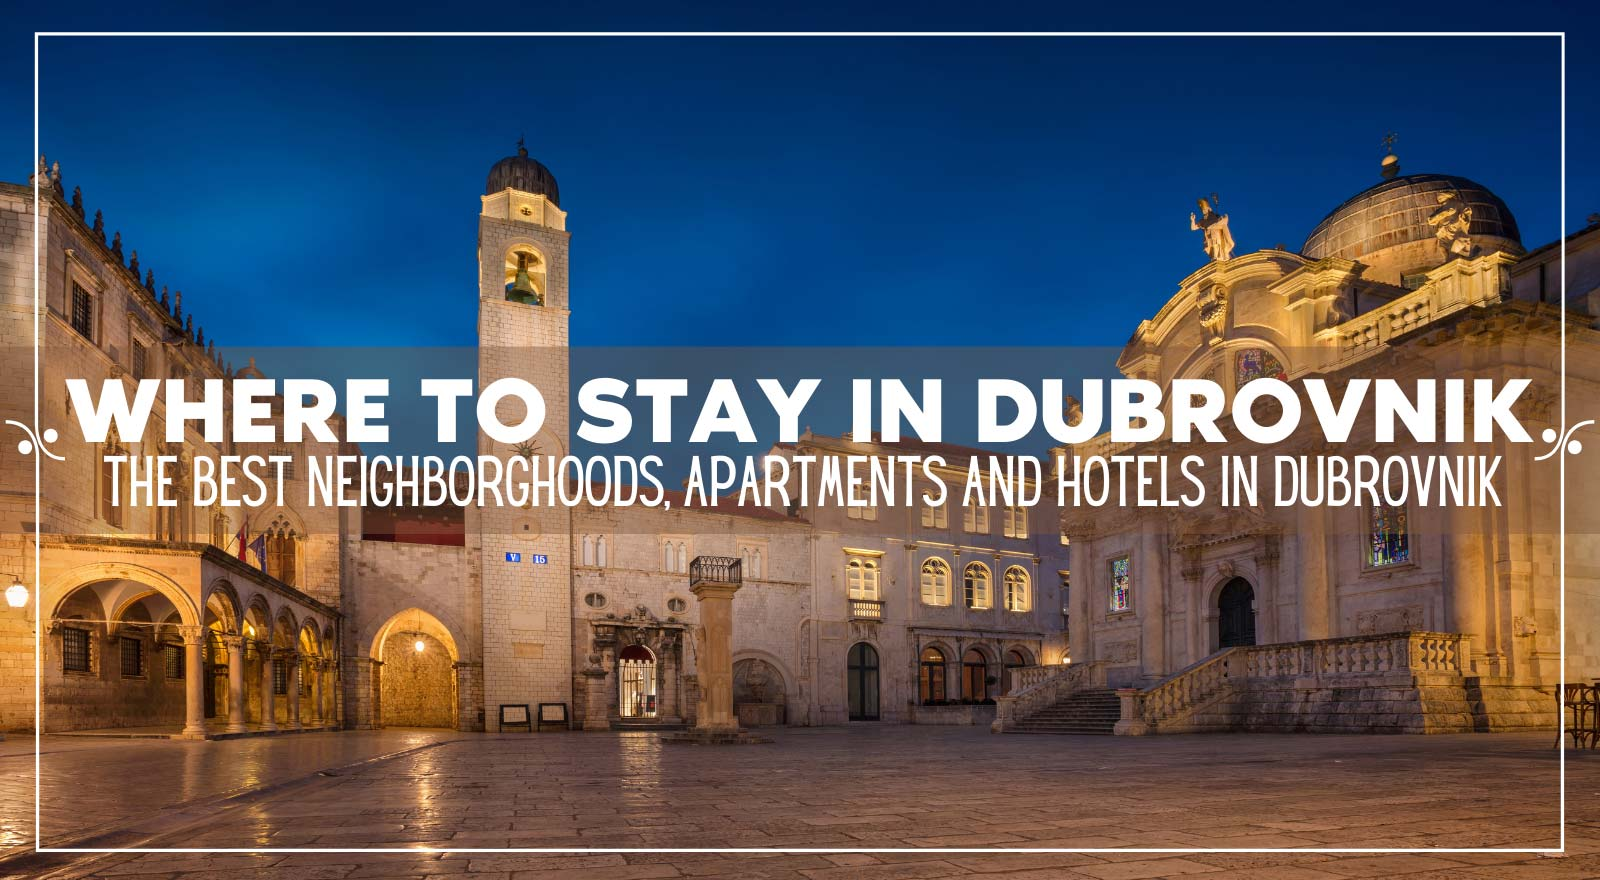 Dubrovnik Accommodation: Where To Stay In Dubrovnik, Illustration